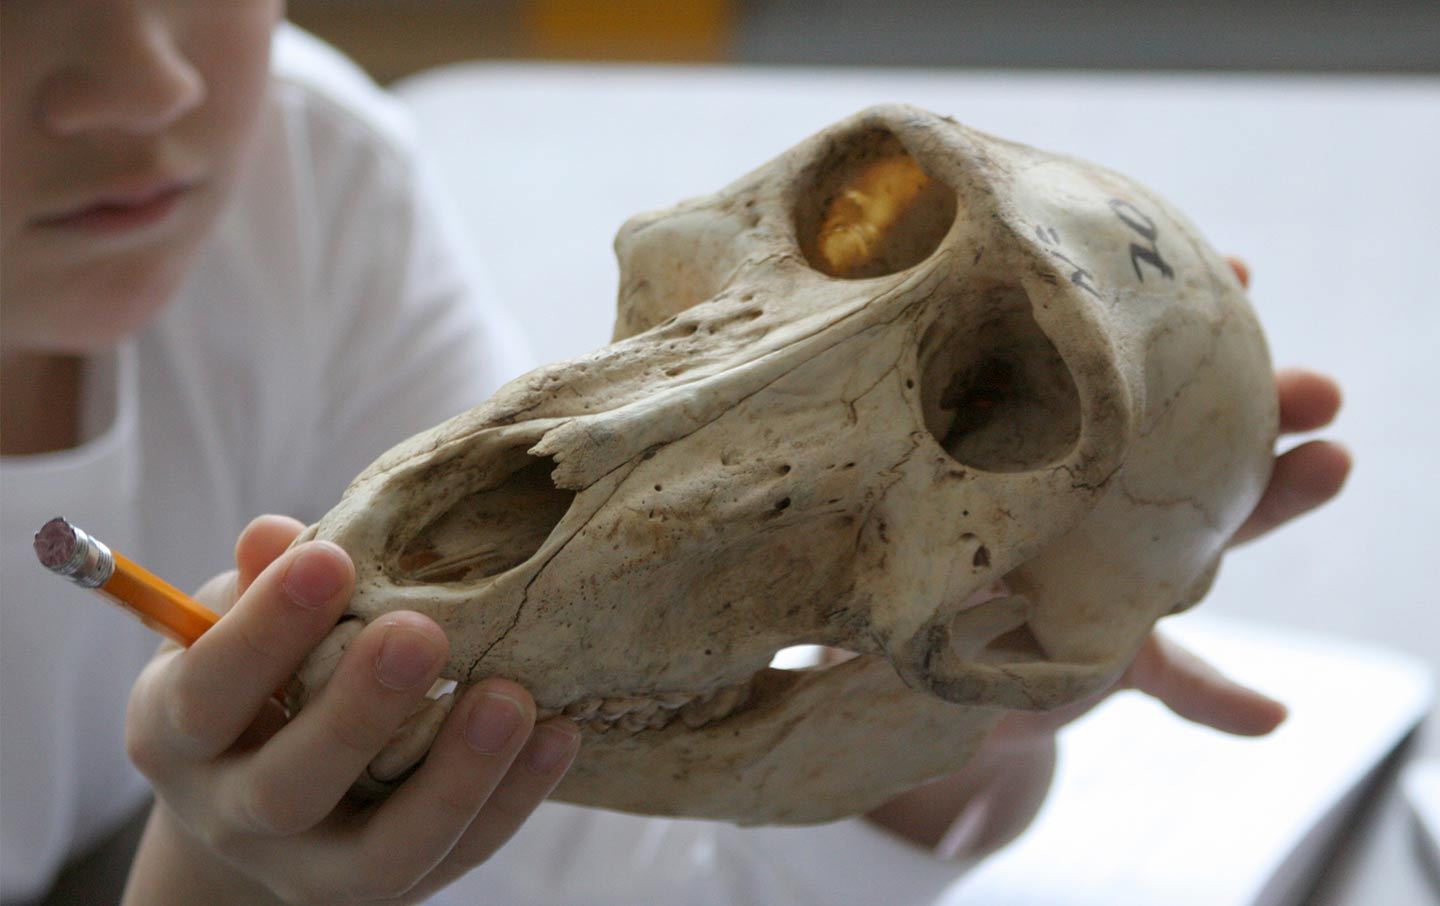 A child examines an animal skull up close.